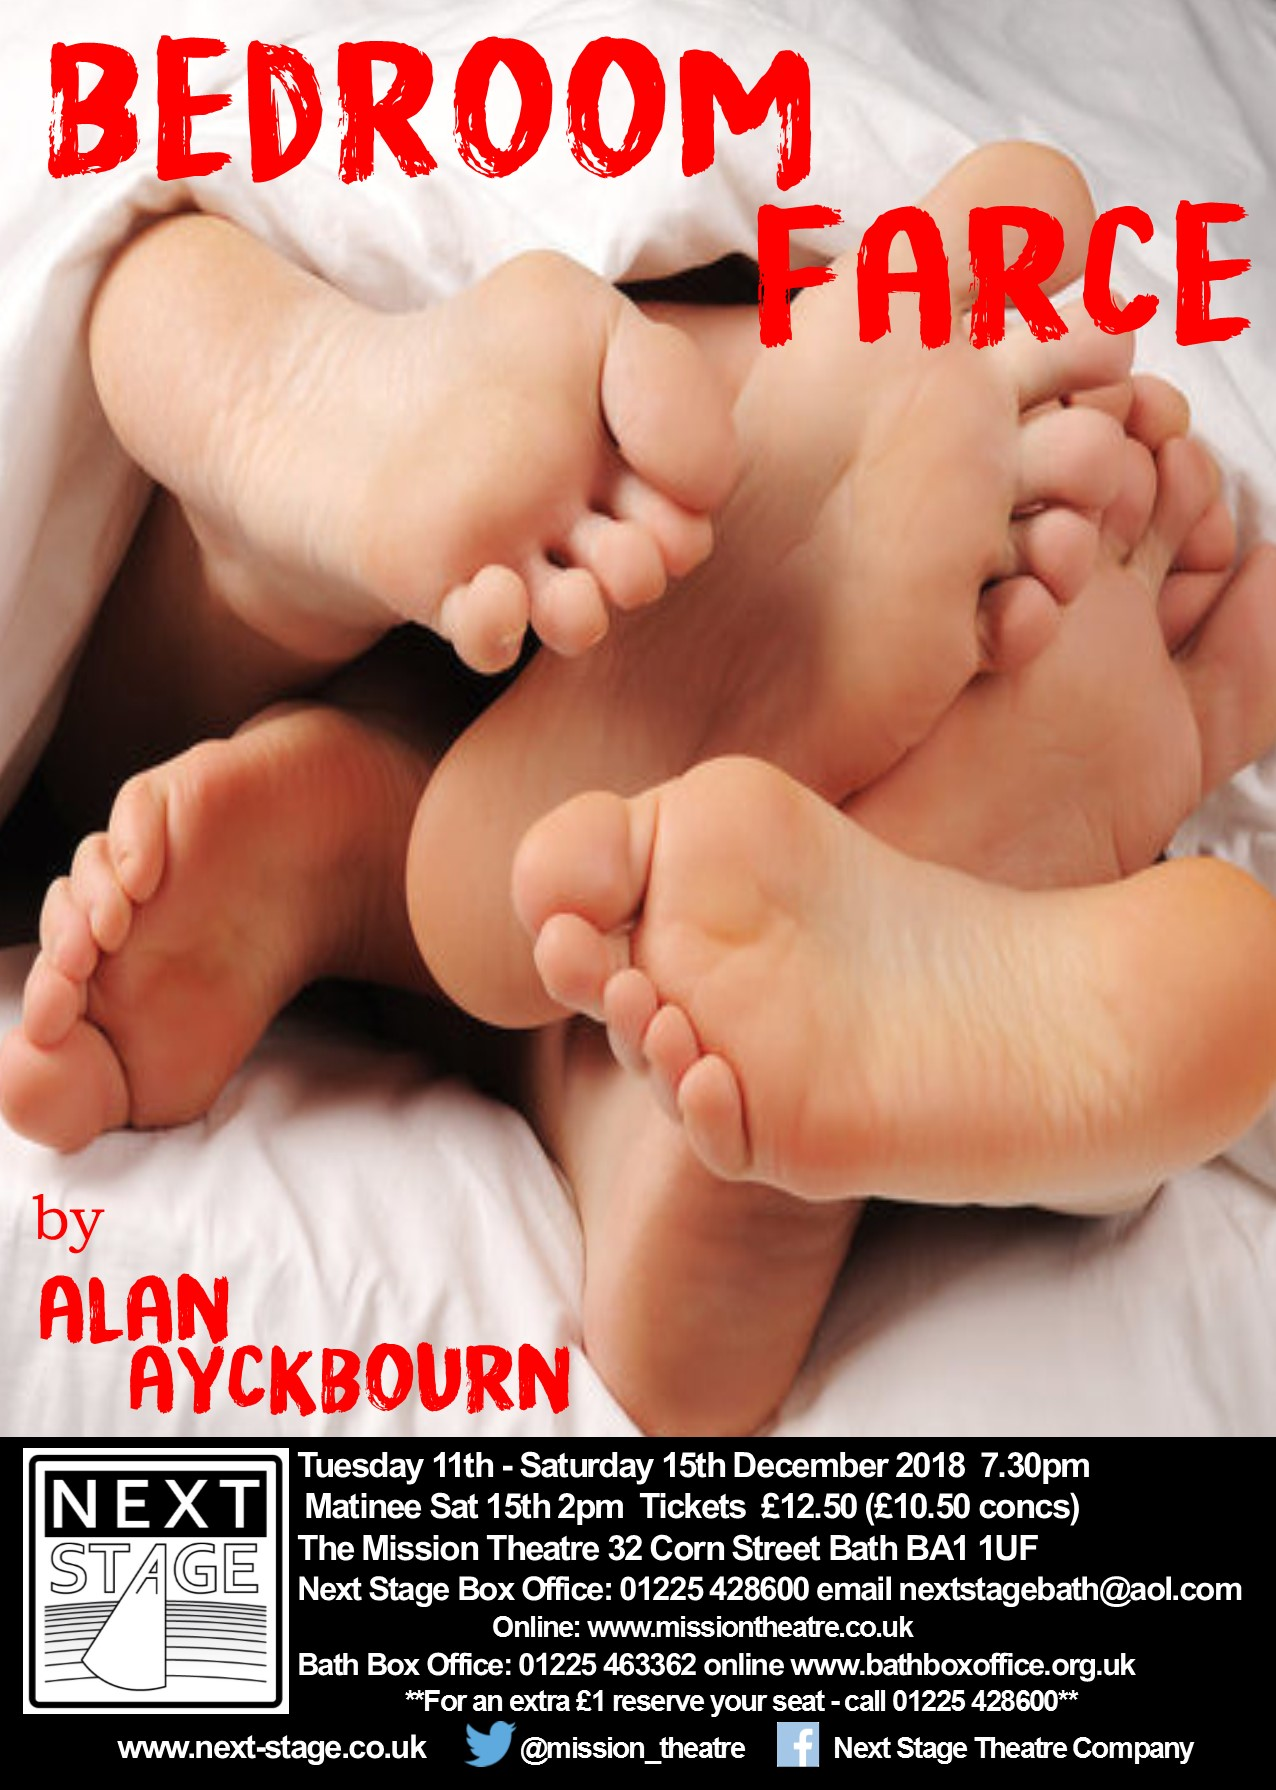 Bedroom Farce Flyer new.jpg